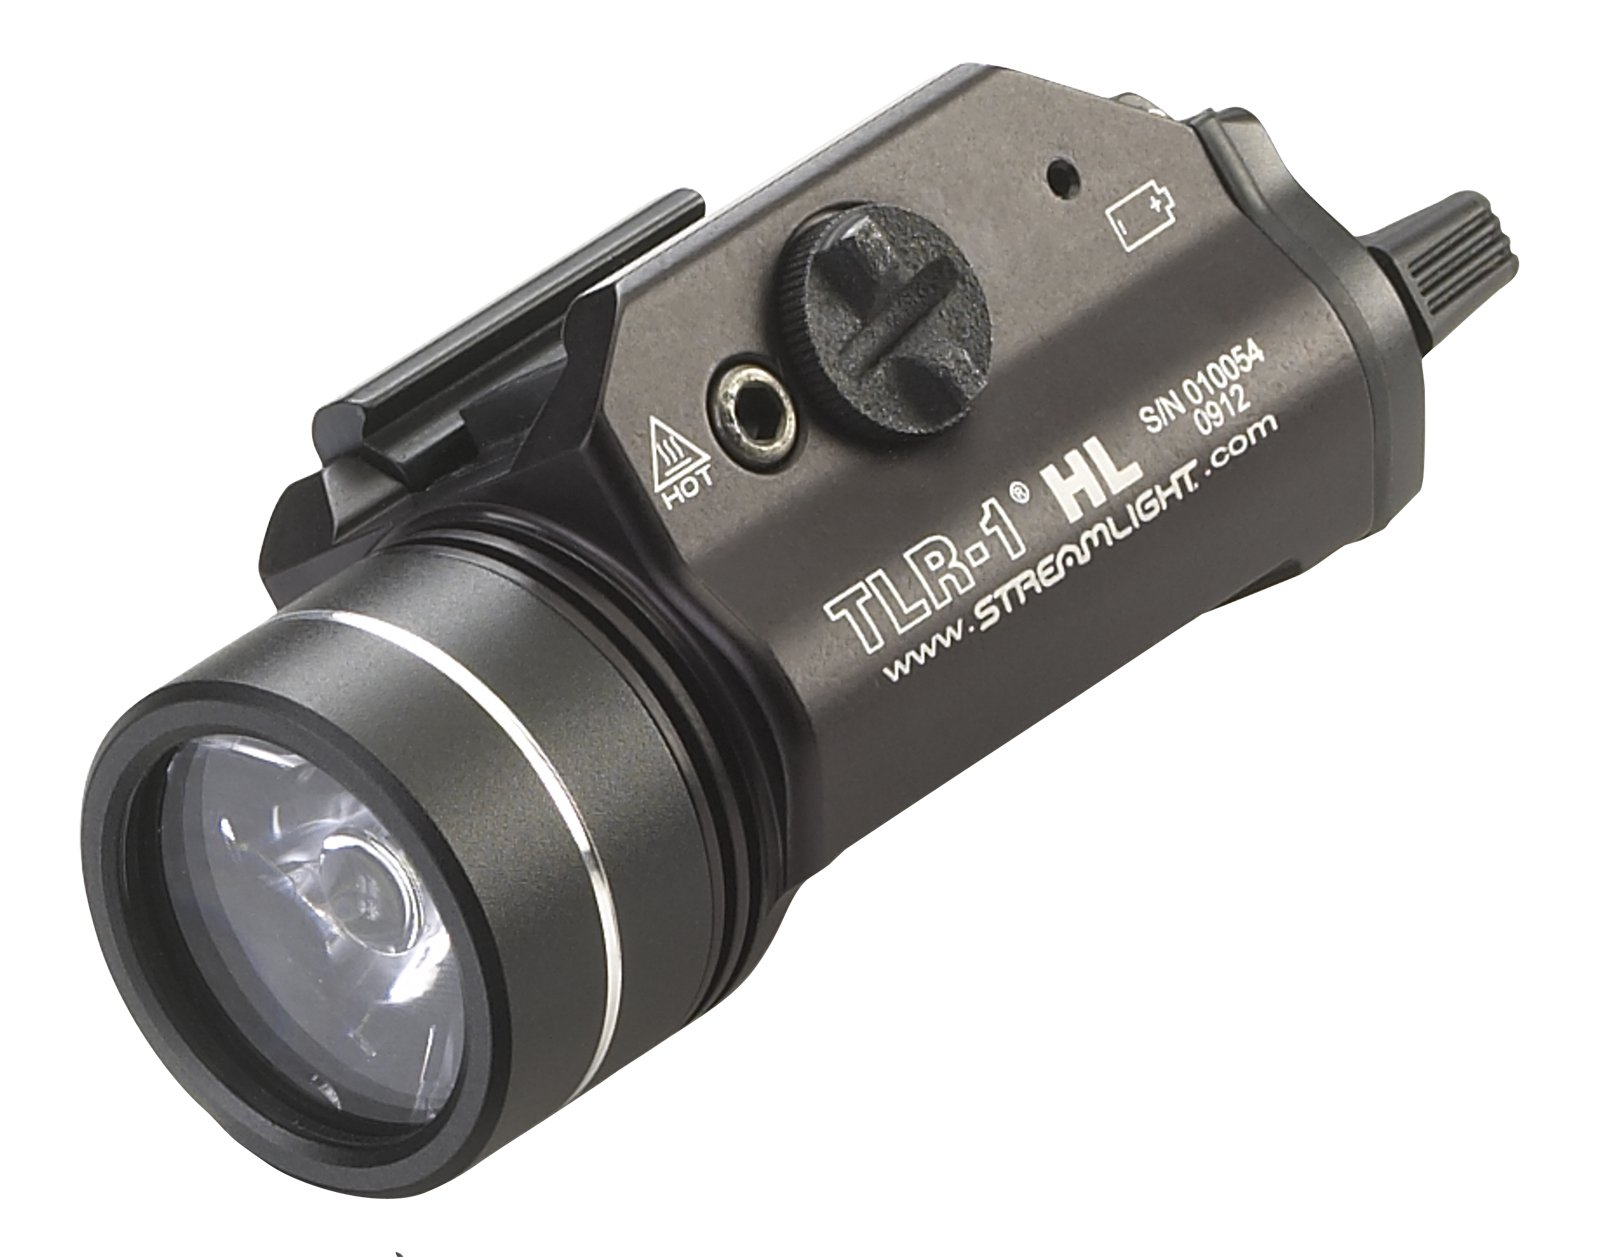 Streamlight 69260 TLR-1 HL Weapon Mount Tactical Flashlight Light 800 Lumens with Strobe by Streamlight